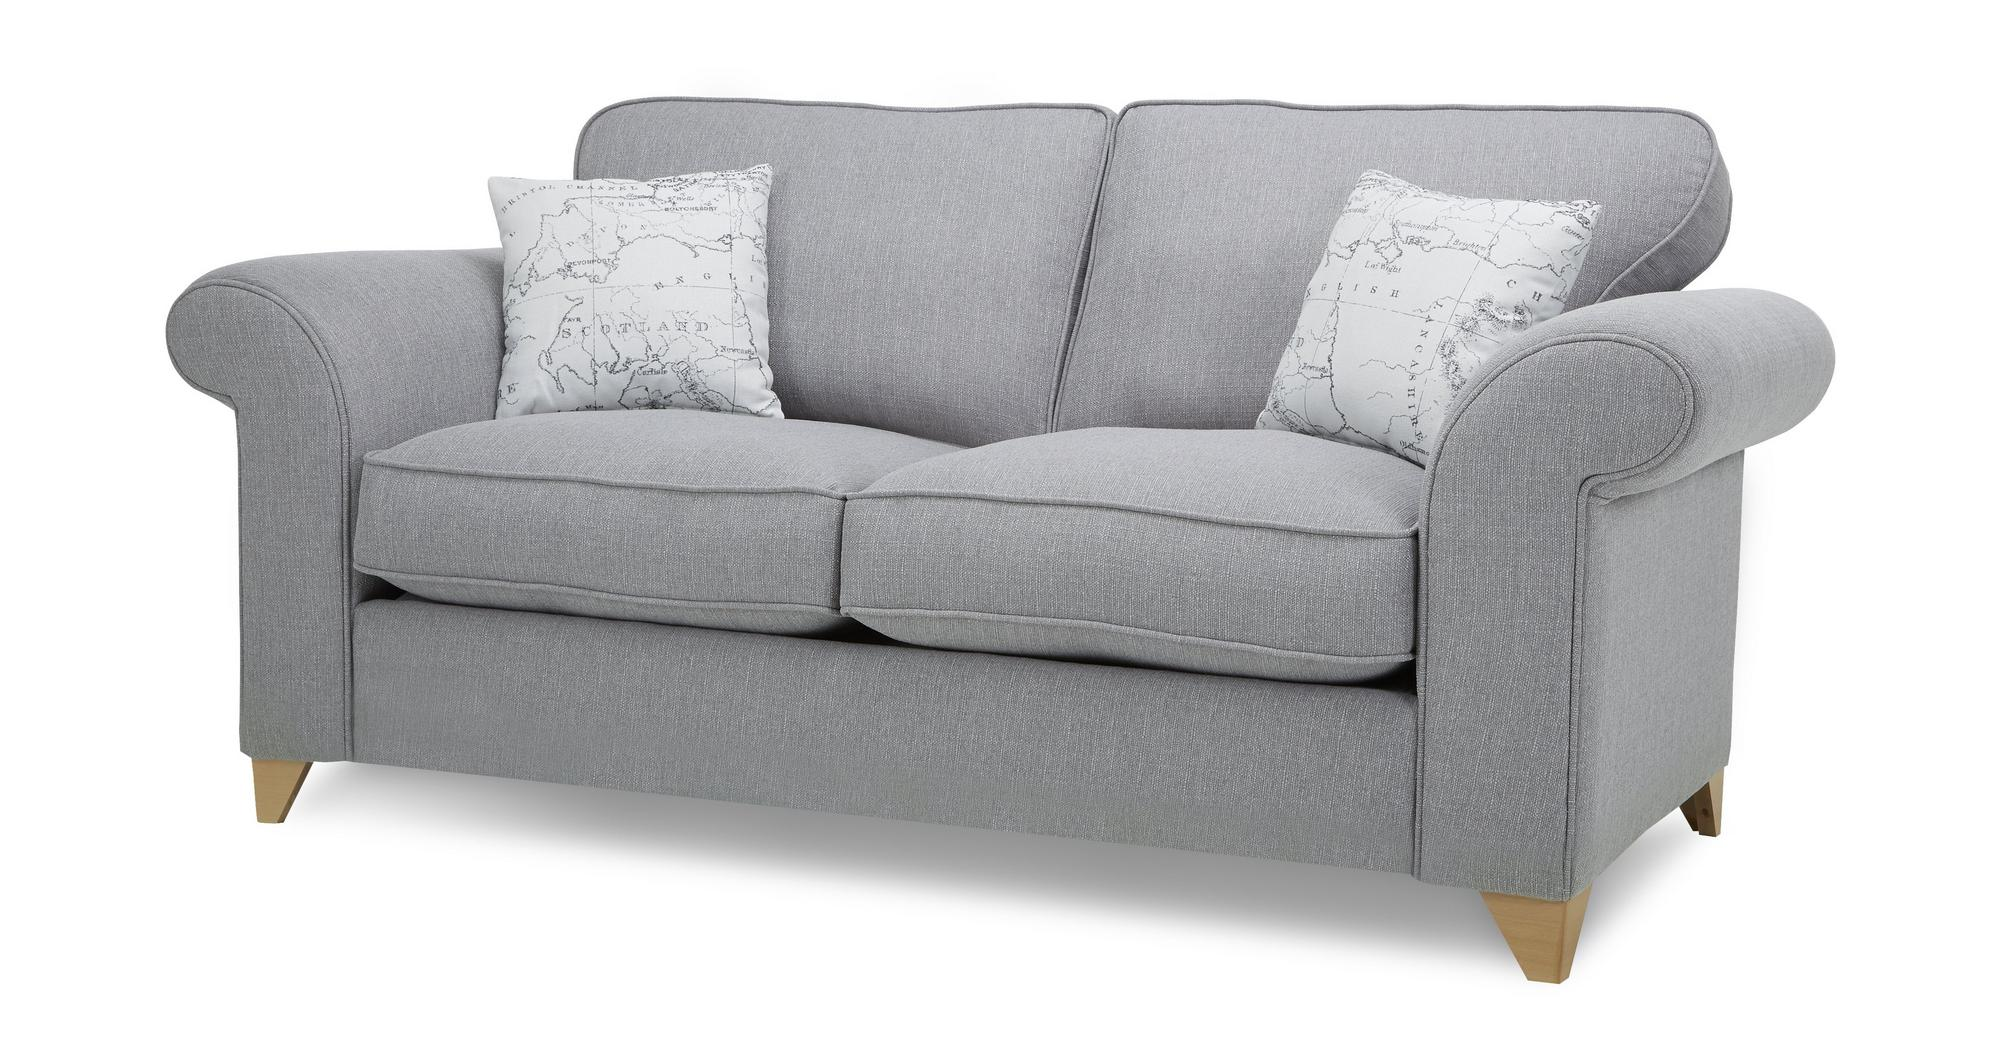 New 28 Dfs Replacement Sofa Cushions 4 Seater Cushion